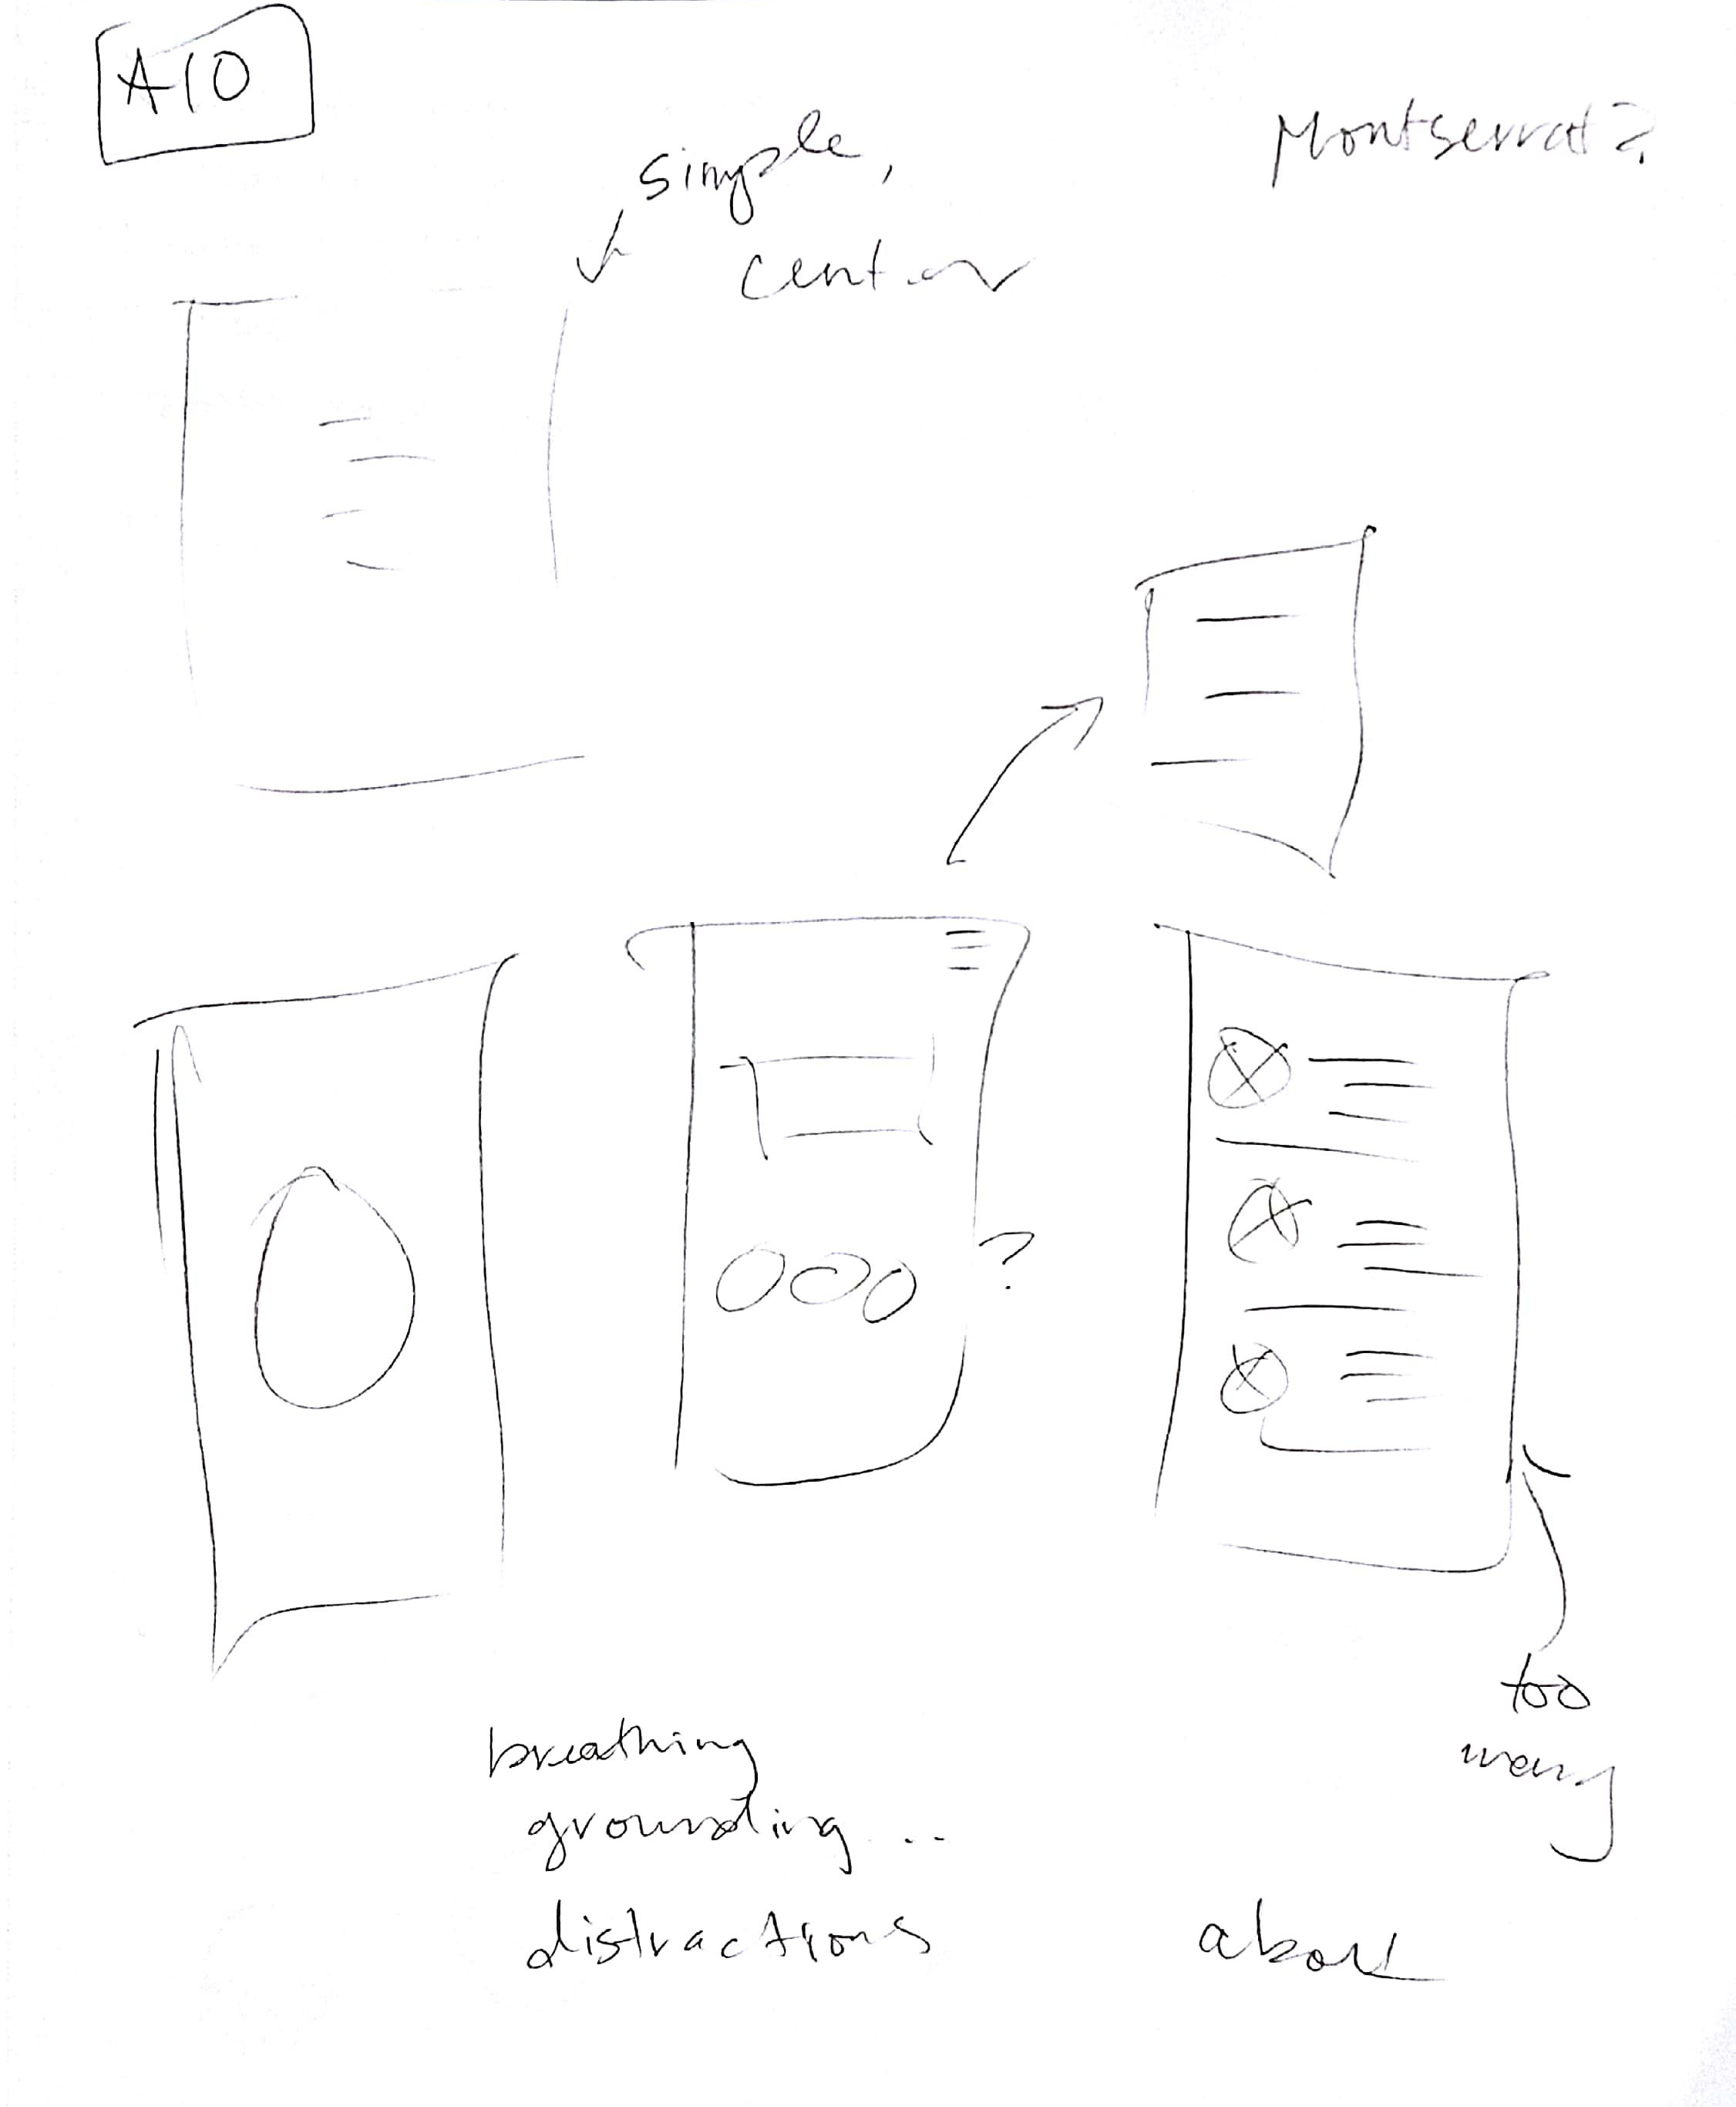 These are the preliminary layout sketches and brainstormed ideas I used in creating my app